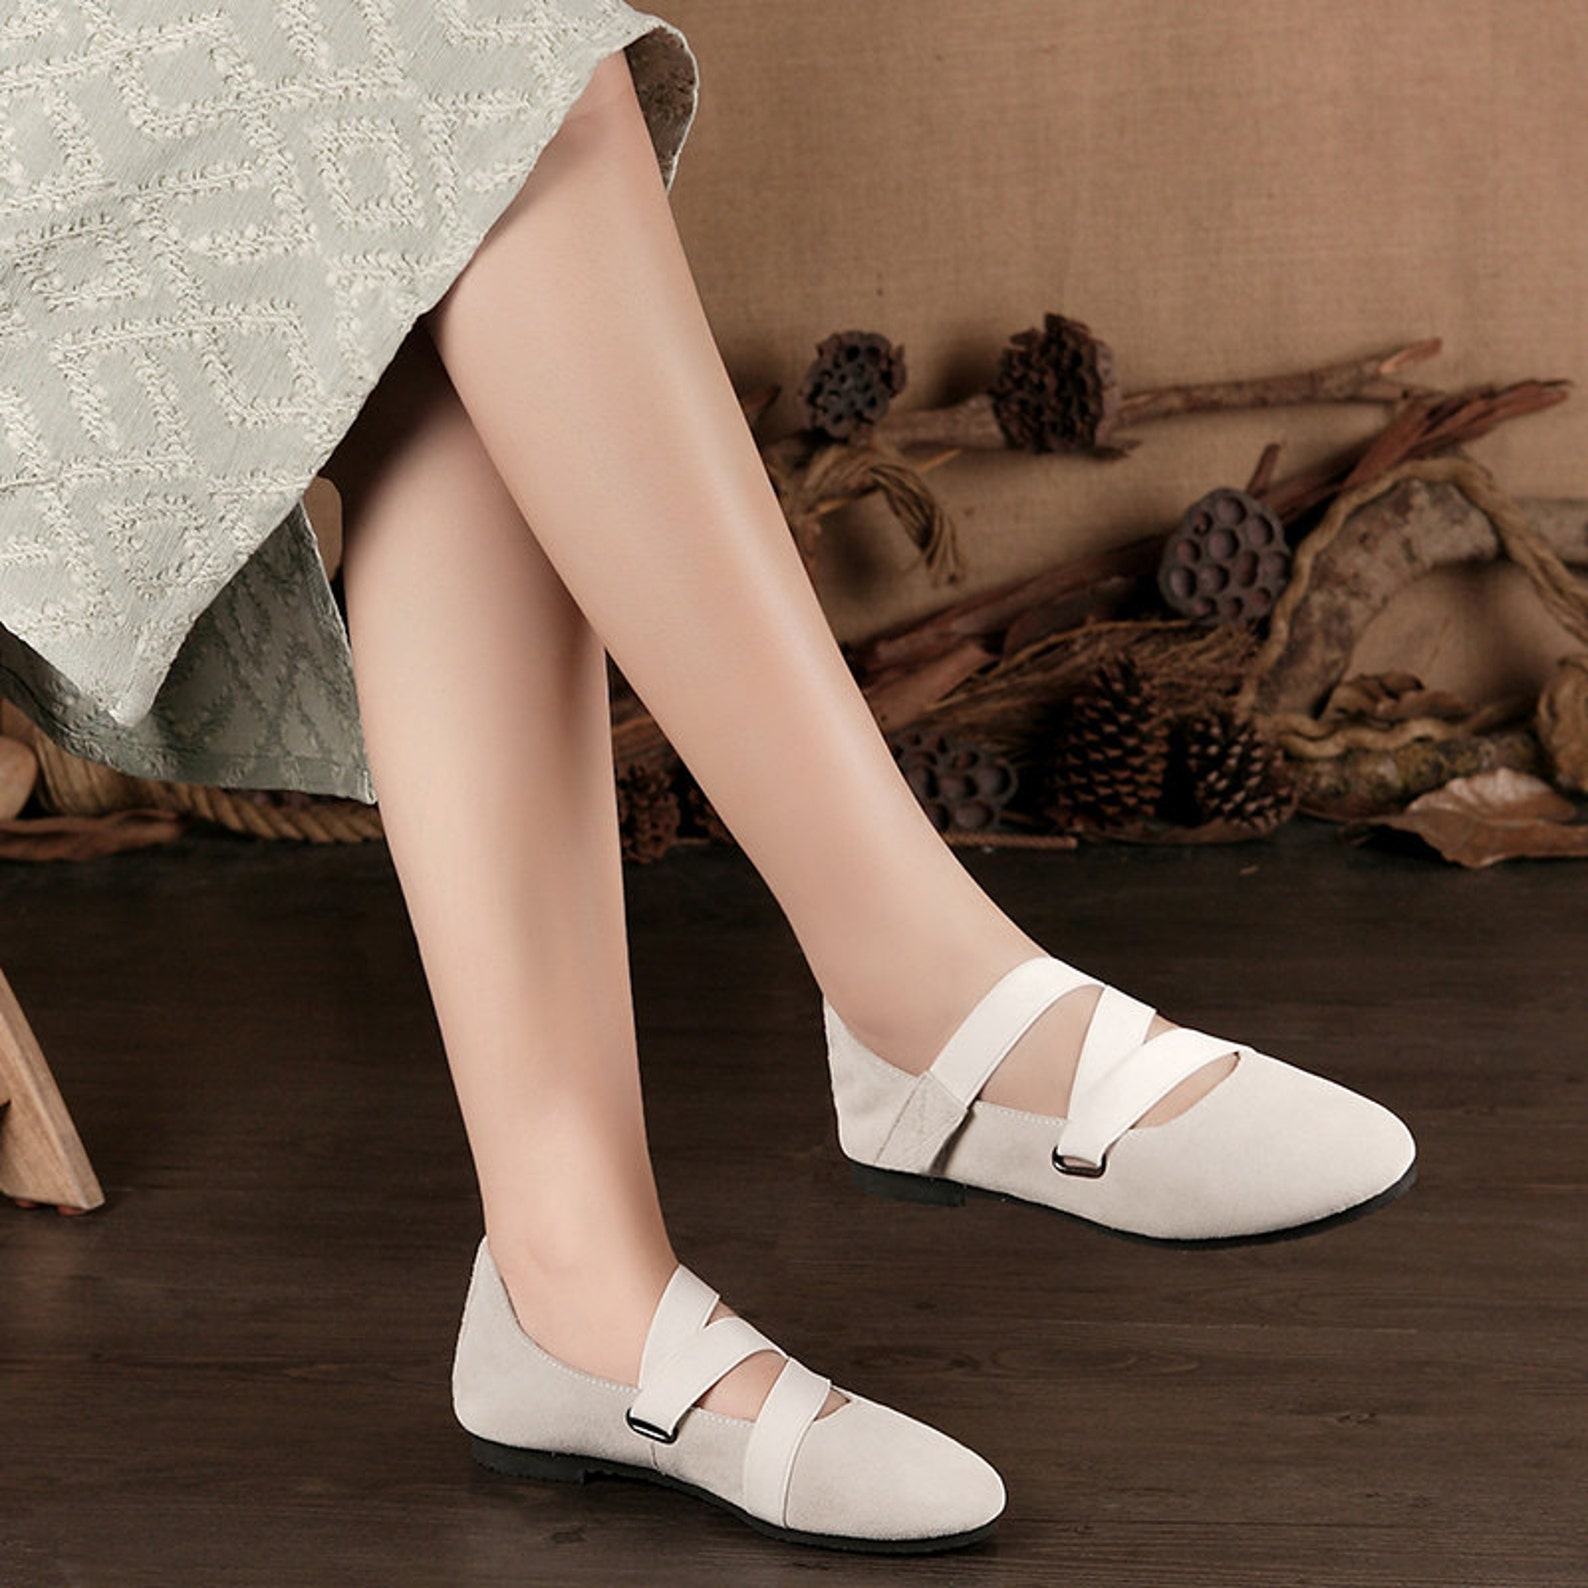 895a6daae080a Grey Handmade Ballet Shoes,oxford Women Shoes, Flat Leather Shoes ...